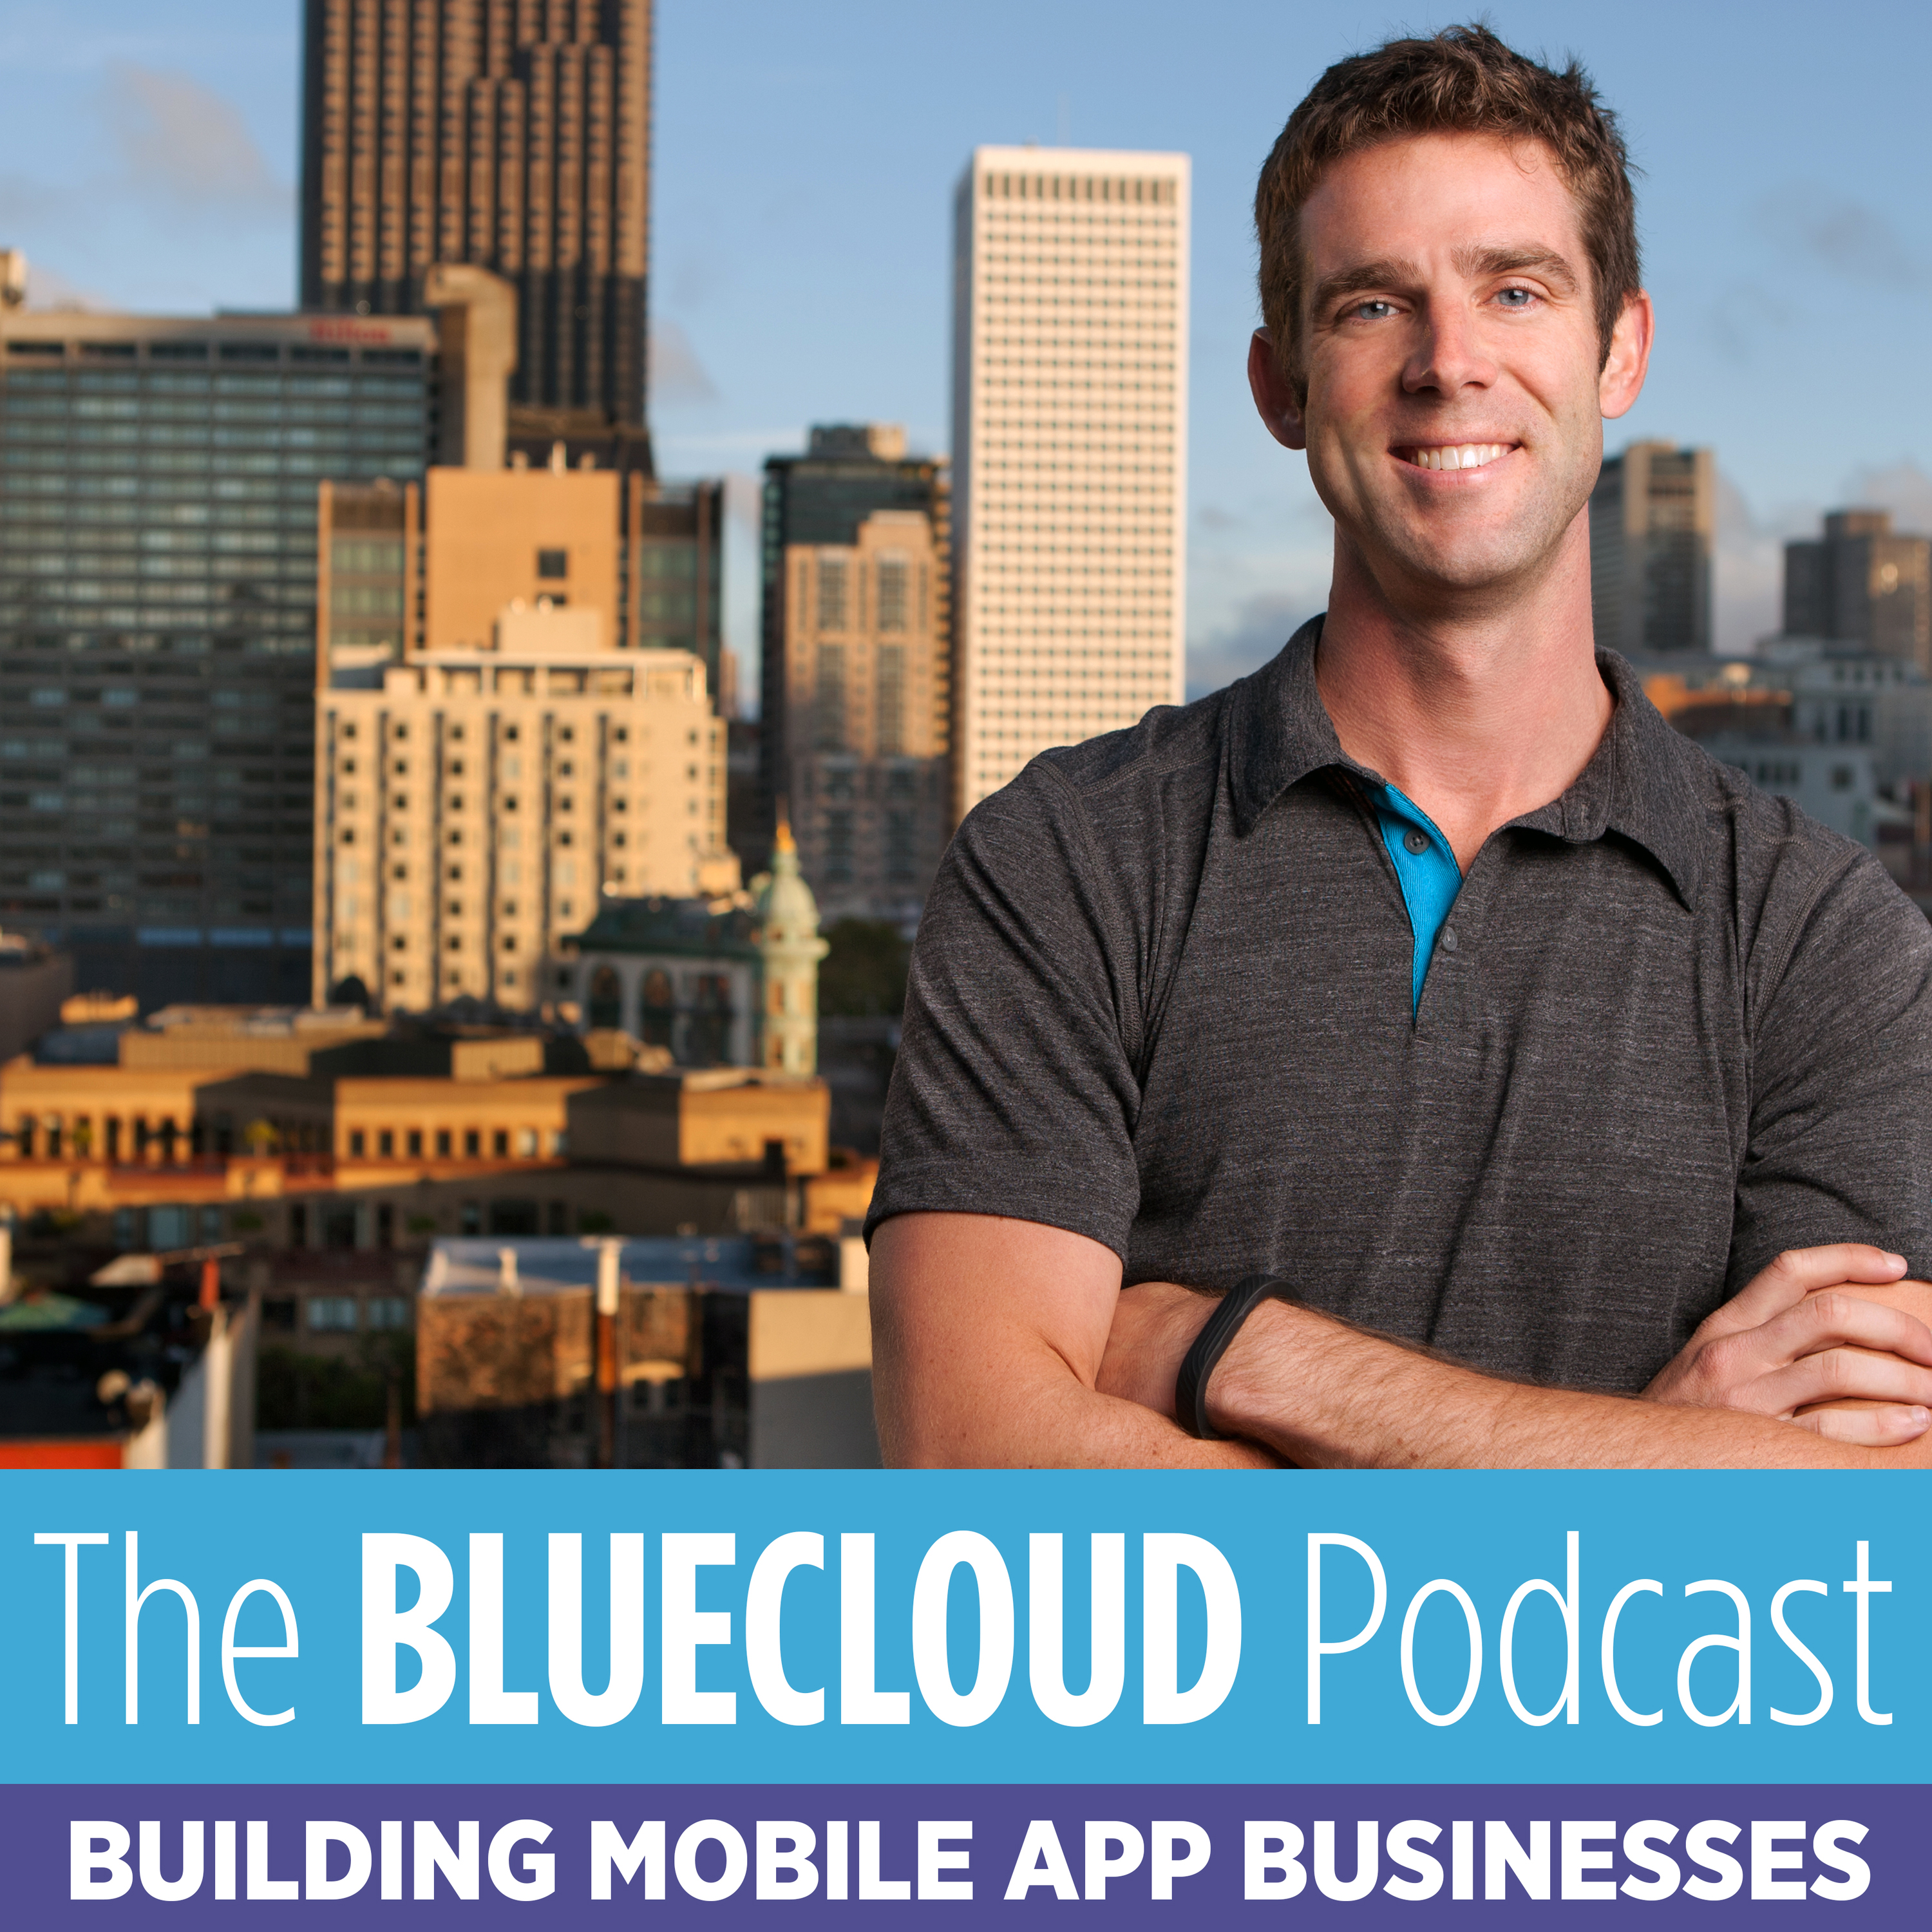 Bluecloud Podcast: Build an App Business | App Marketing | Make Money With Apps | Passive Income | App Development